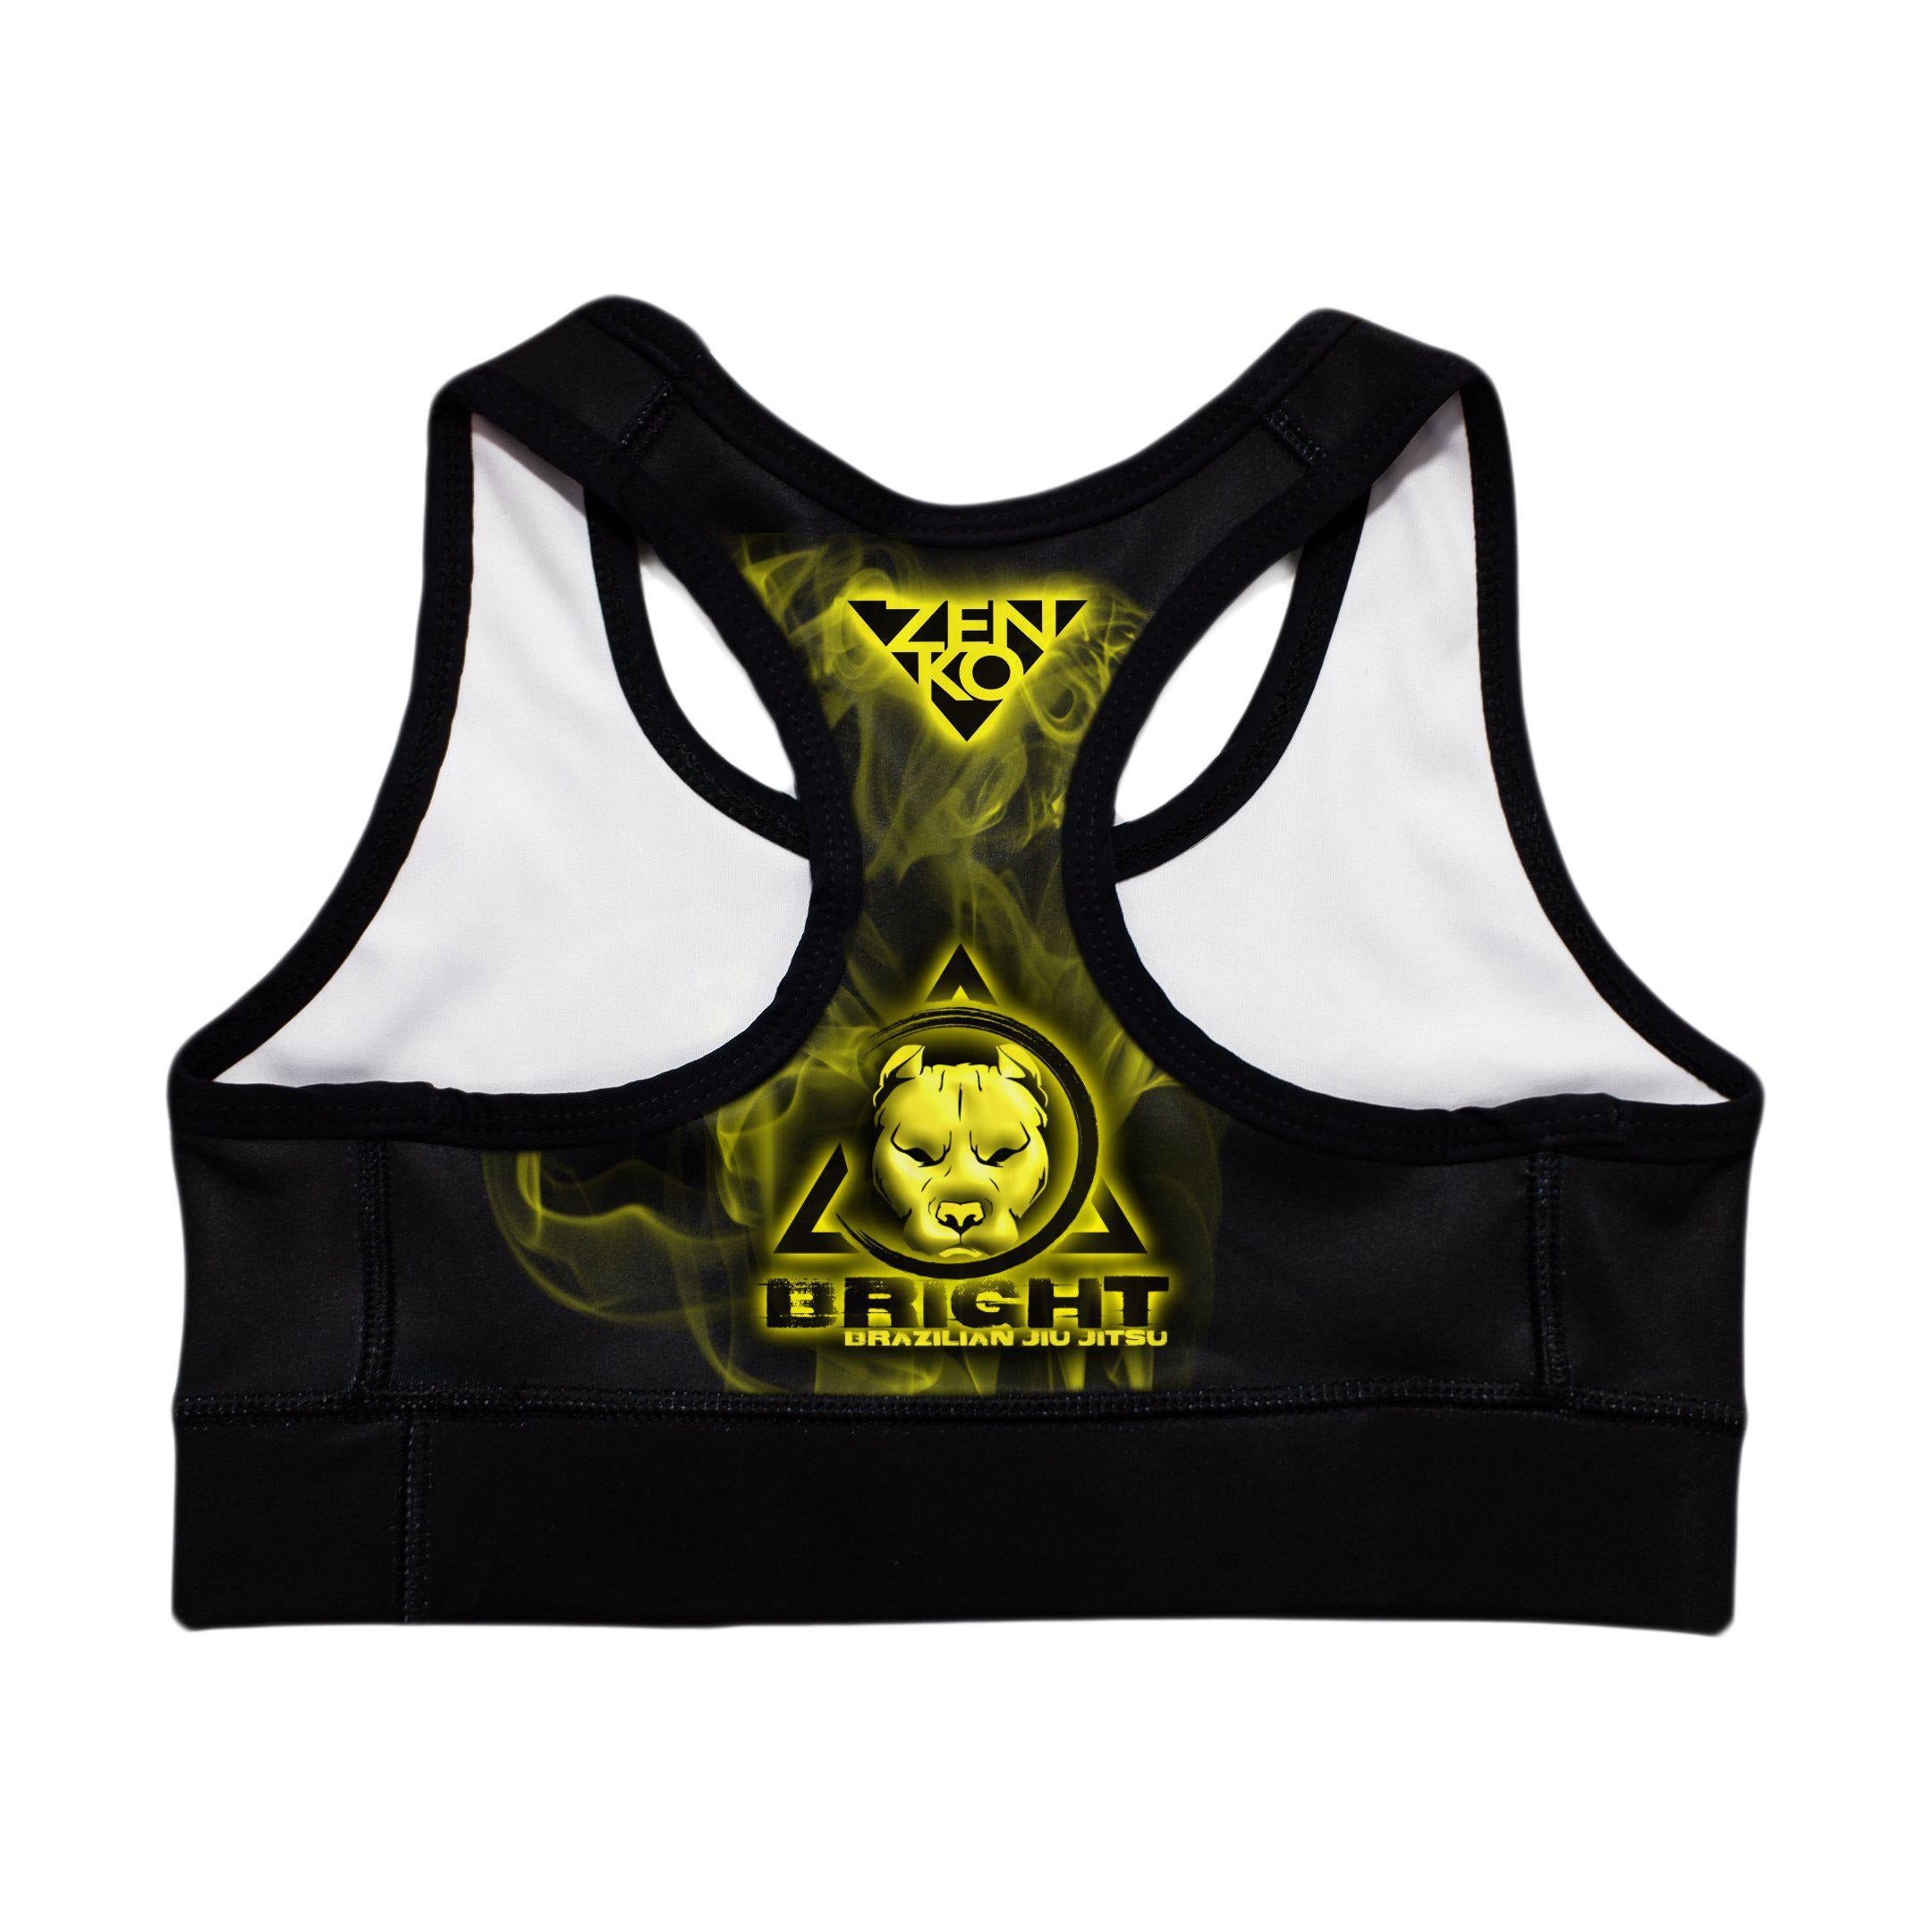 Bright BJJ Sports Bra - Zenko Fightwear